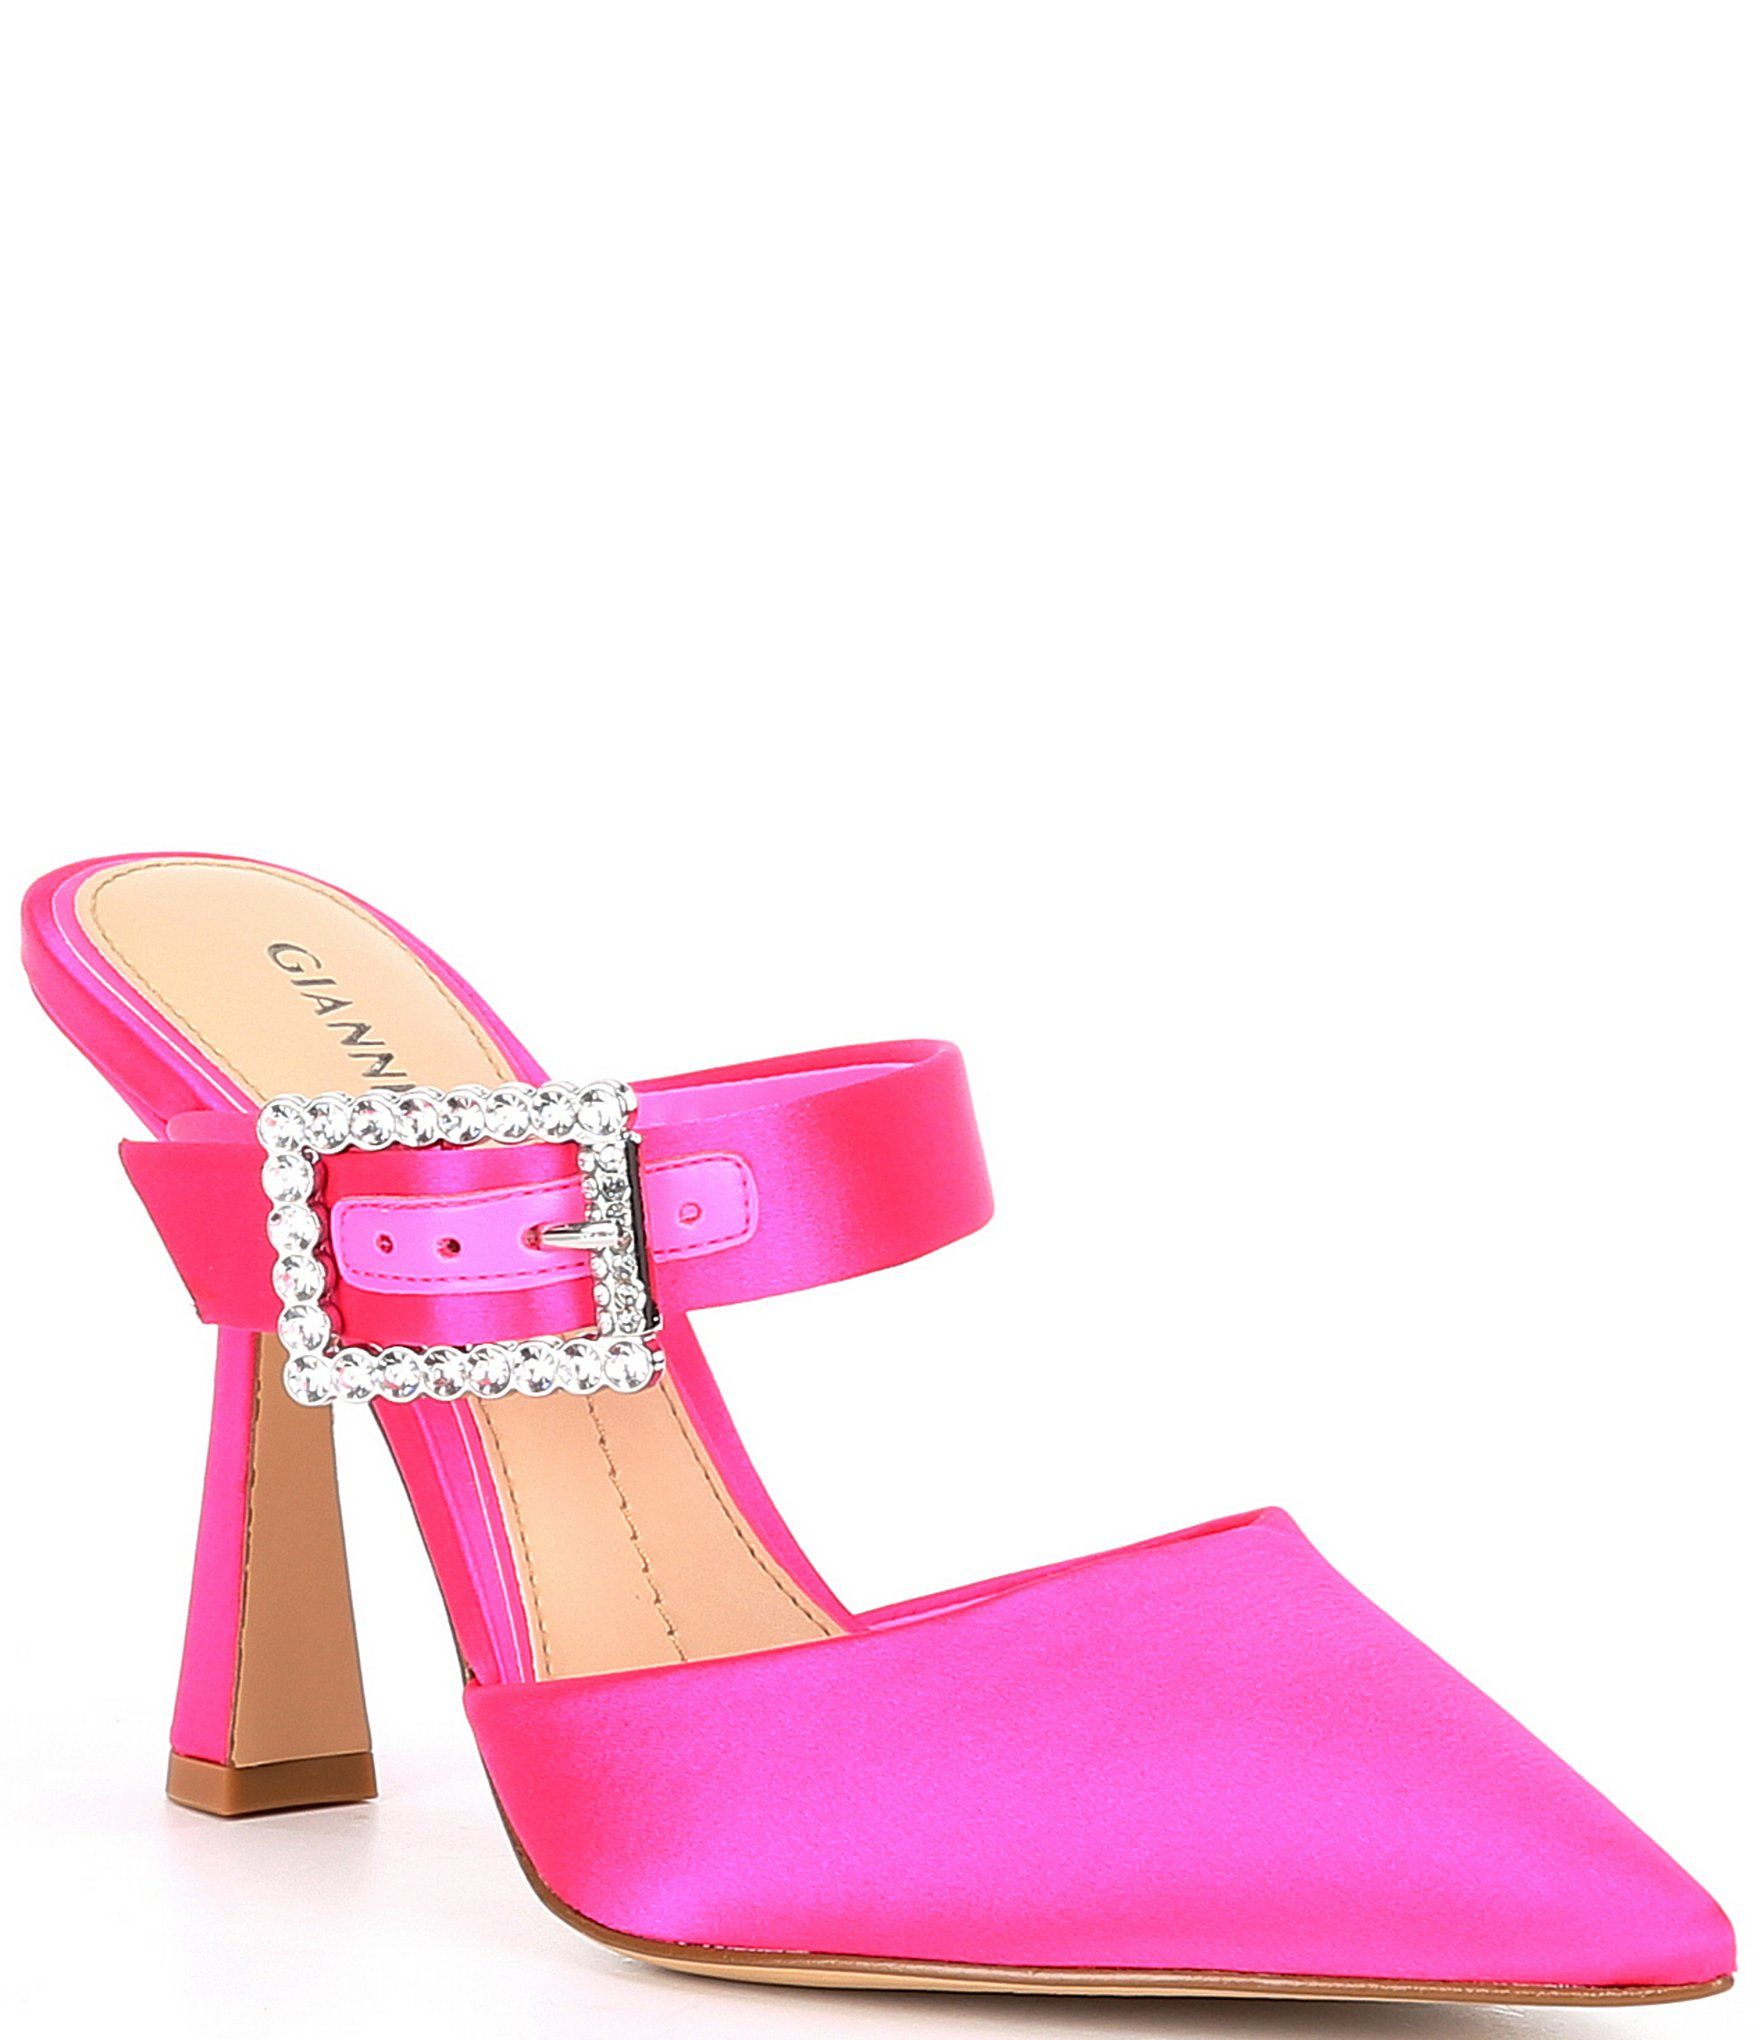 Gianni Bini Maleenah Satin Jeweled Buckle Mules Dillard S In 2020 Women Shoes Womens Heels Shoes Heels Pumps